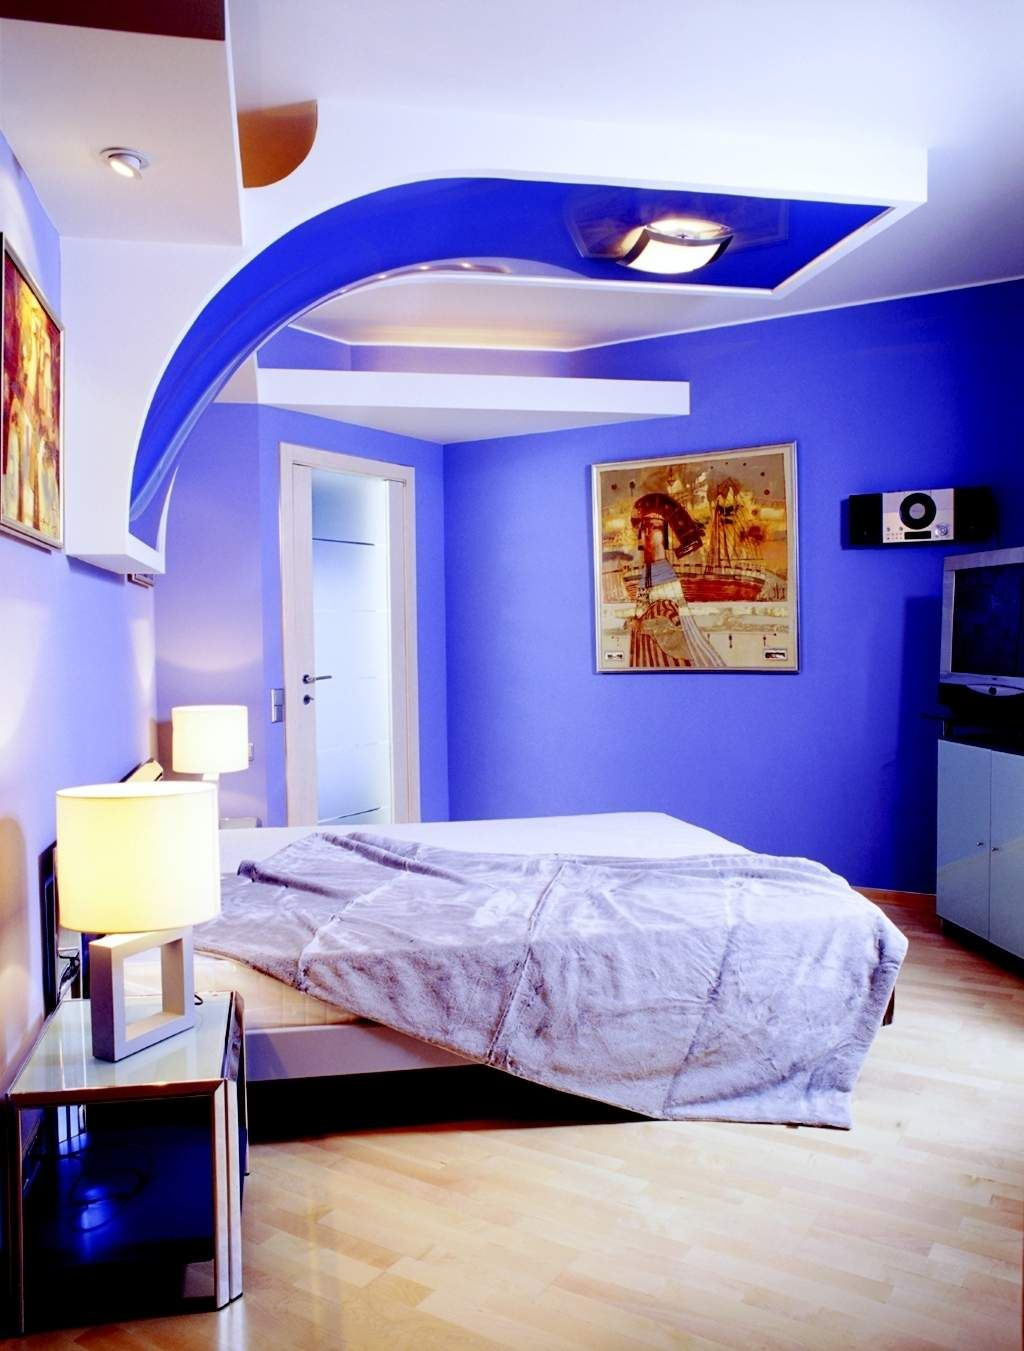 Bedroom Decorating Ideas And Colours kids bedroom futuristic design of boys bedroom in bright blue and